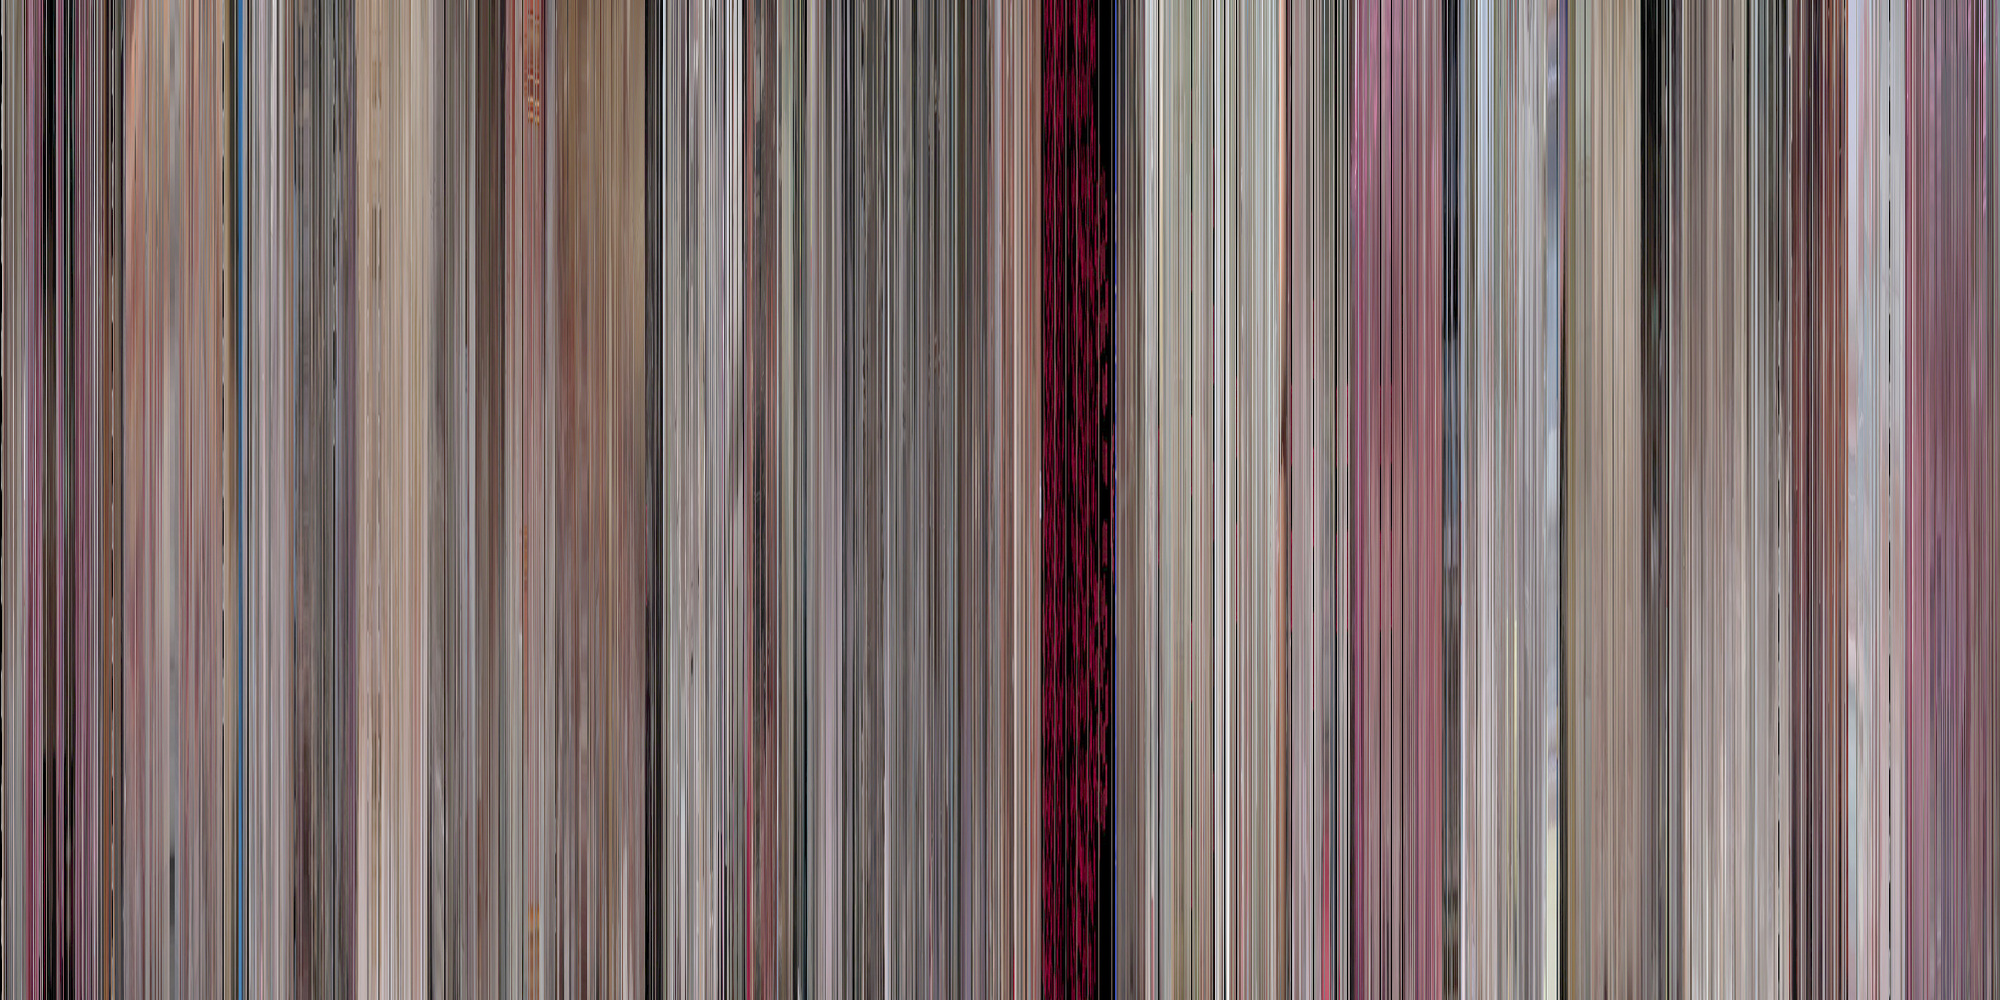 Movie Barcode of Scarface